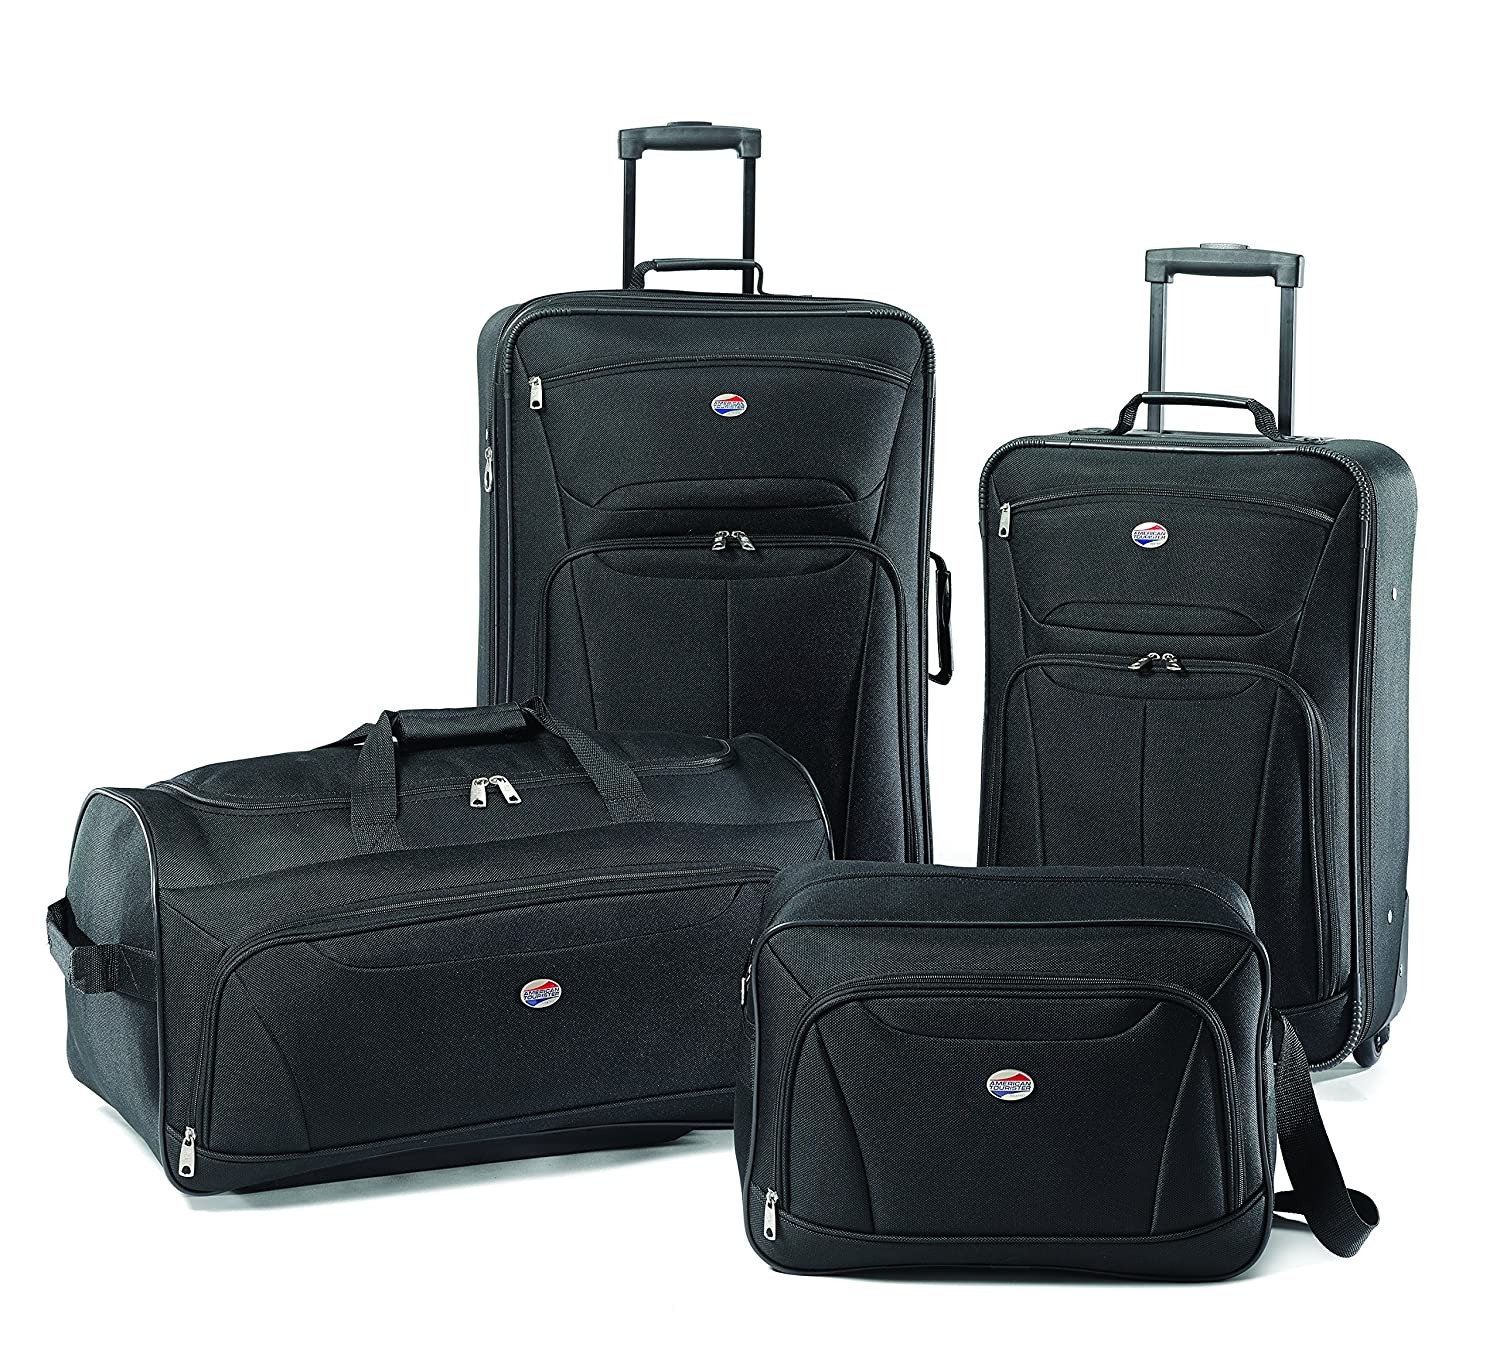 Suitcase American Tourister: User Reviews 77